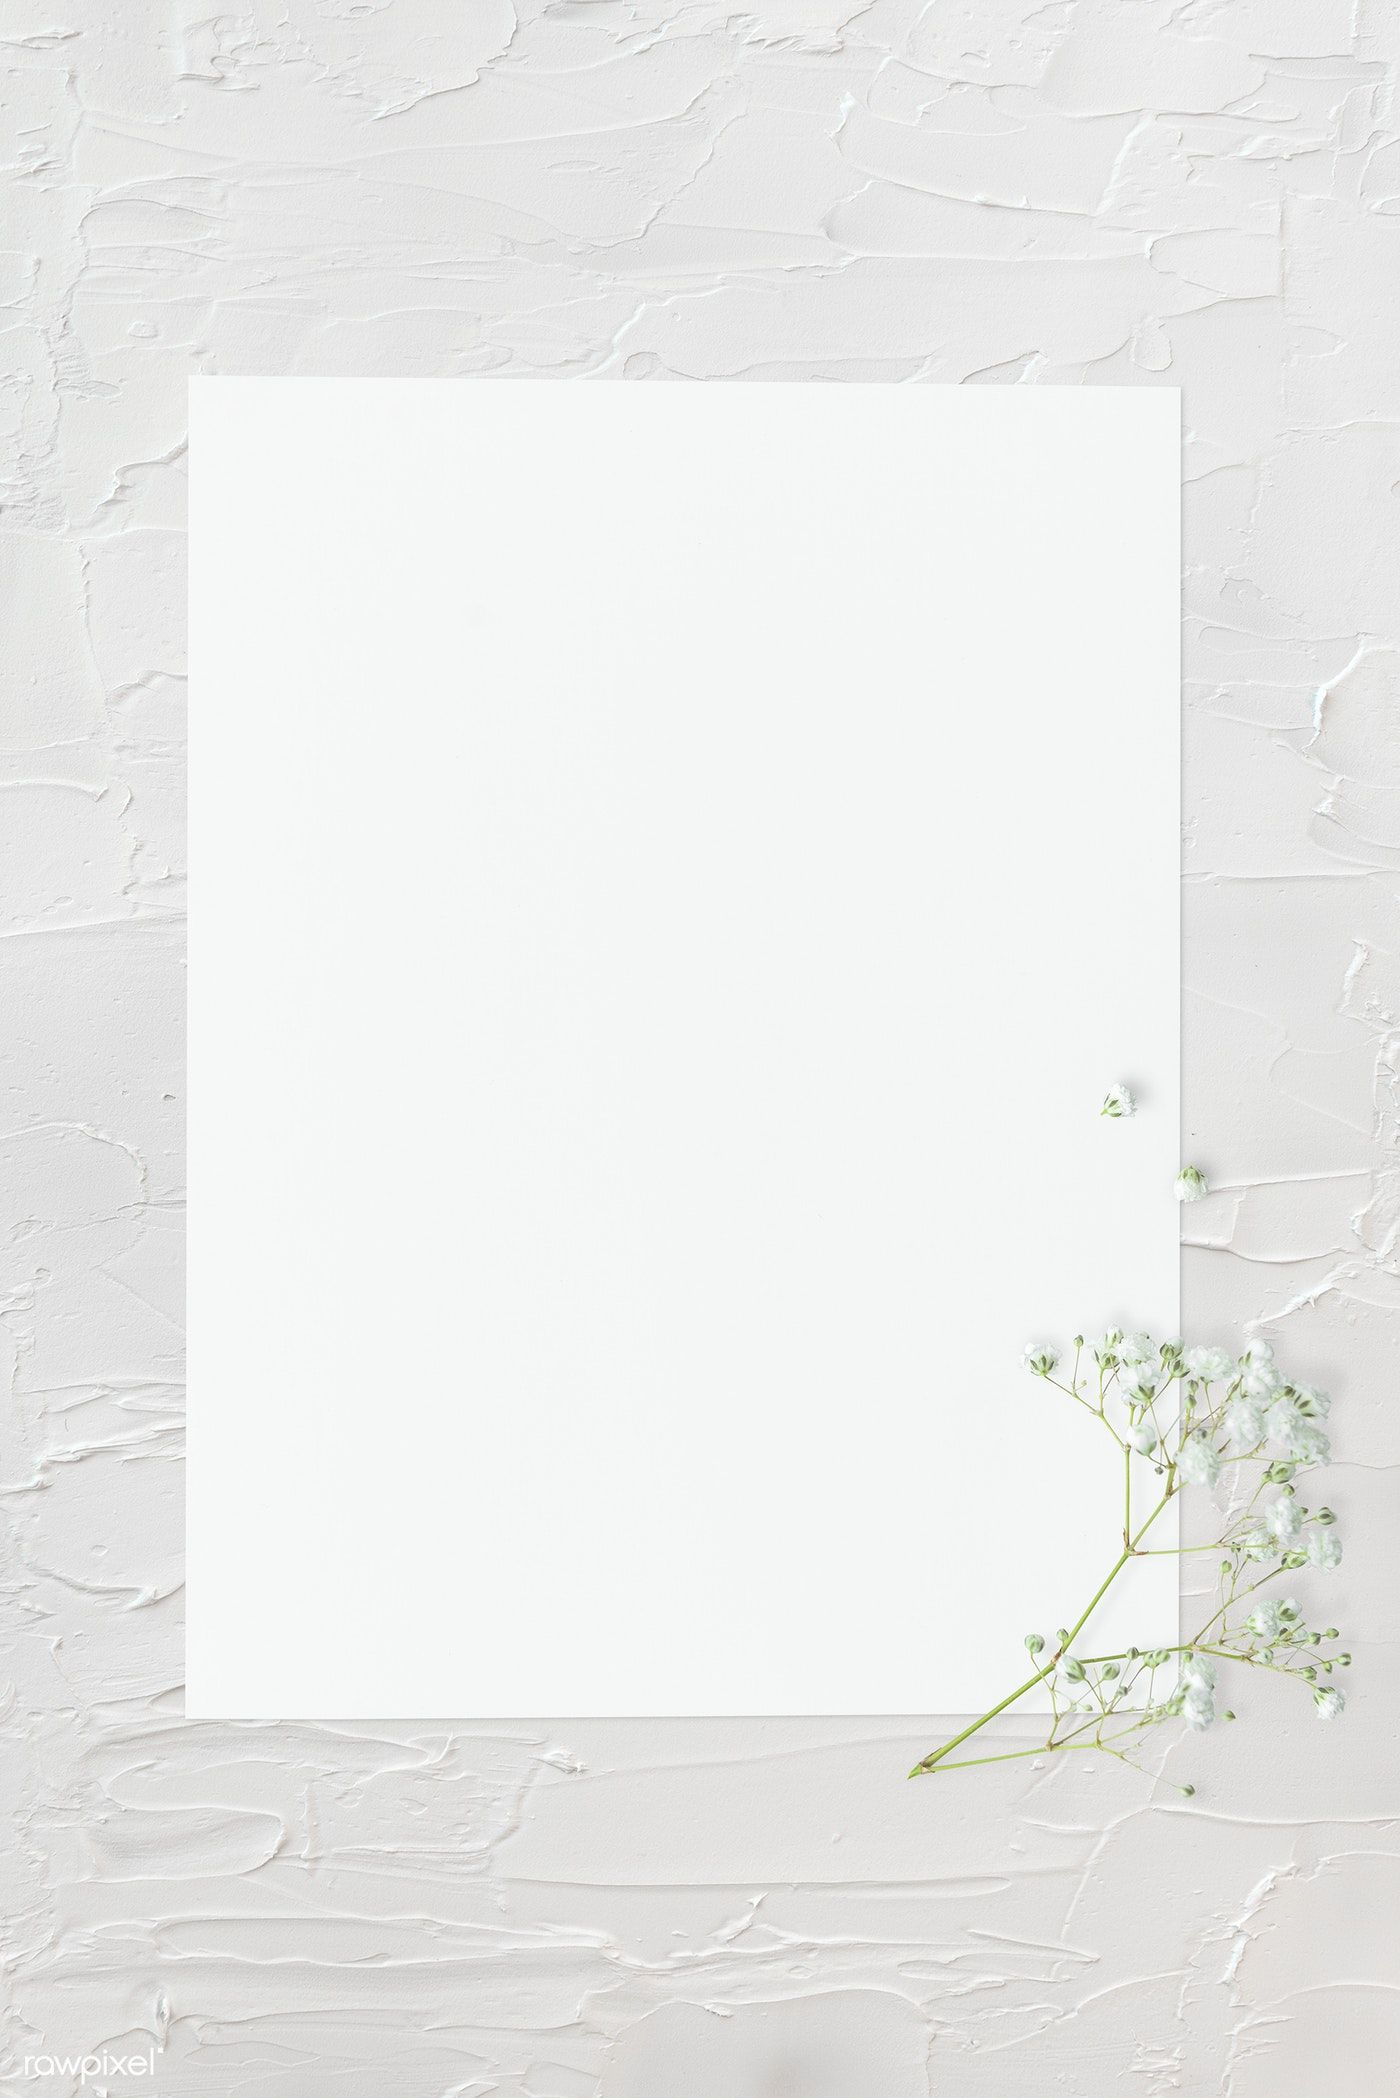 Download Premium Psd Of Blank Plain White Paper Template 1201886 Paper Template Instagram Frame Template Instagram Frame